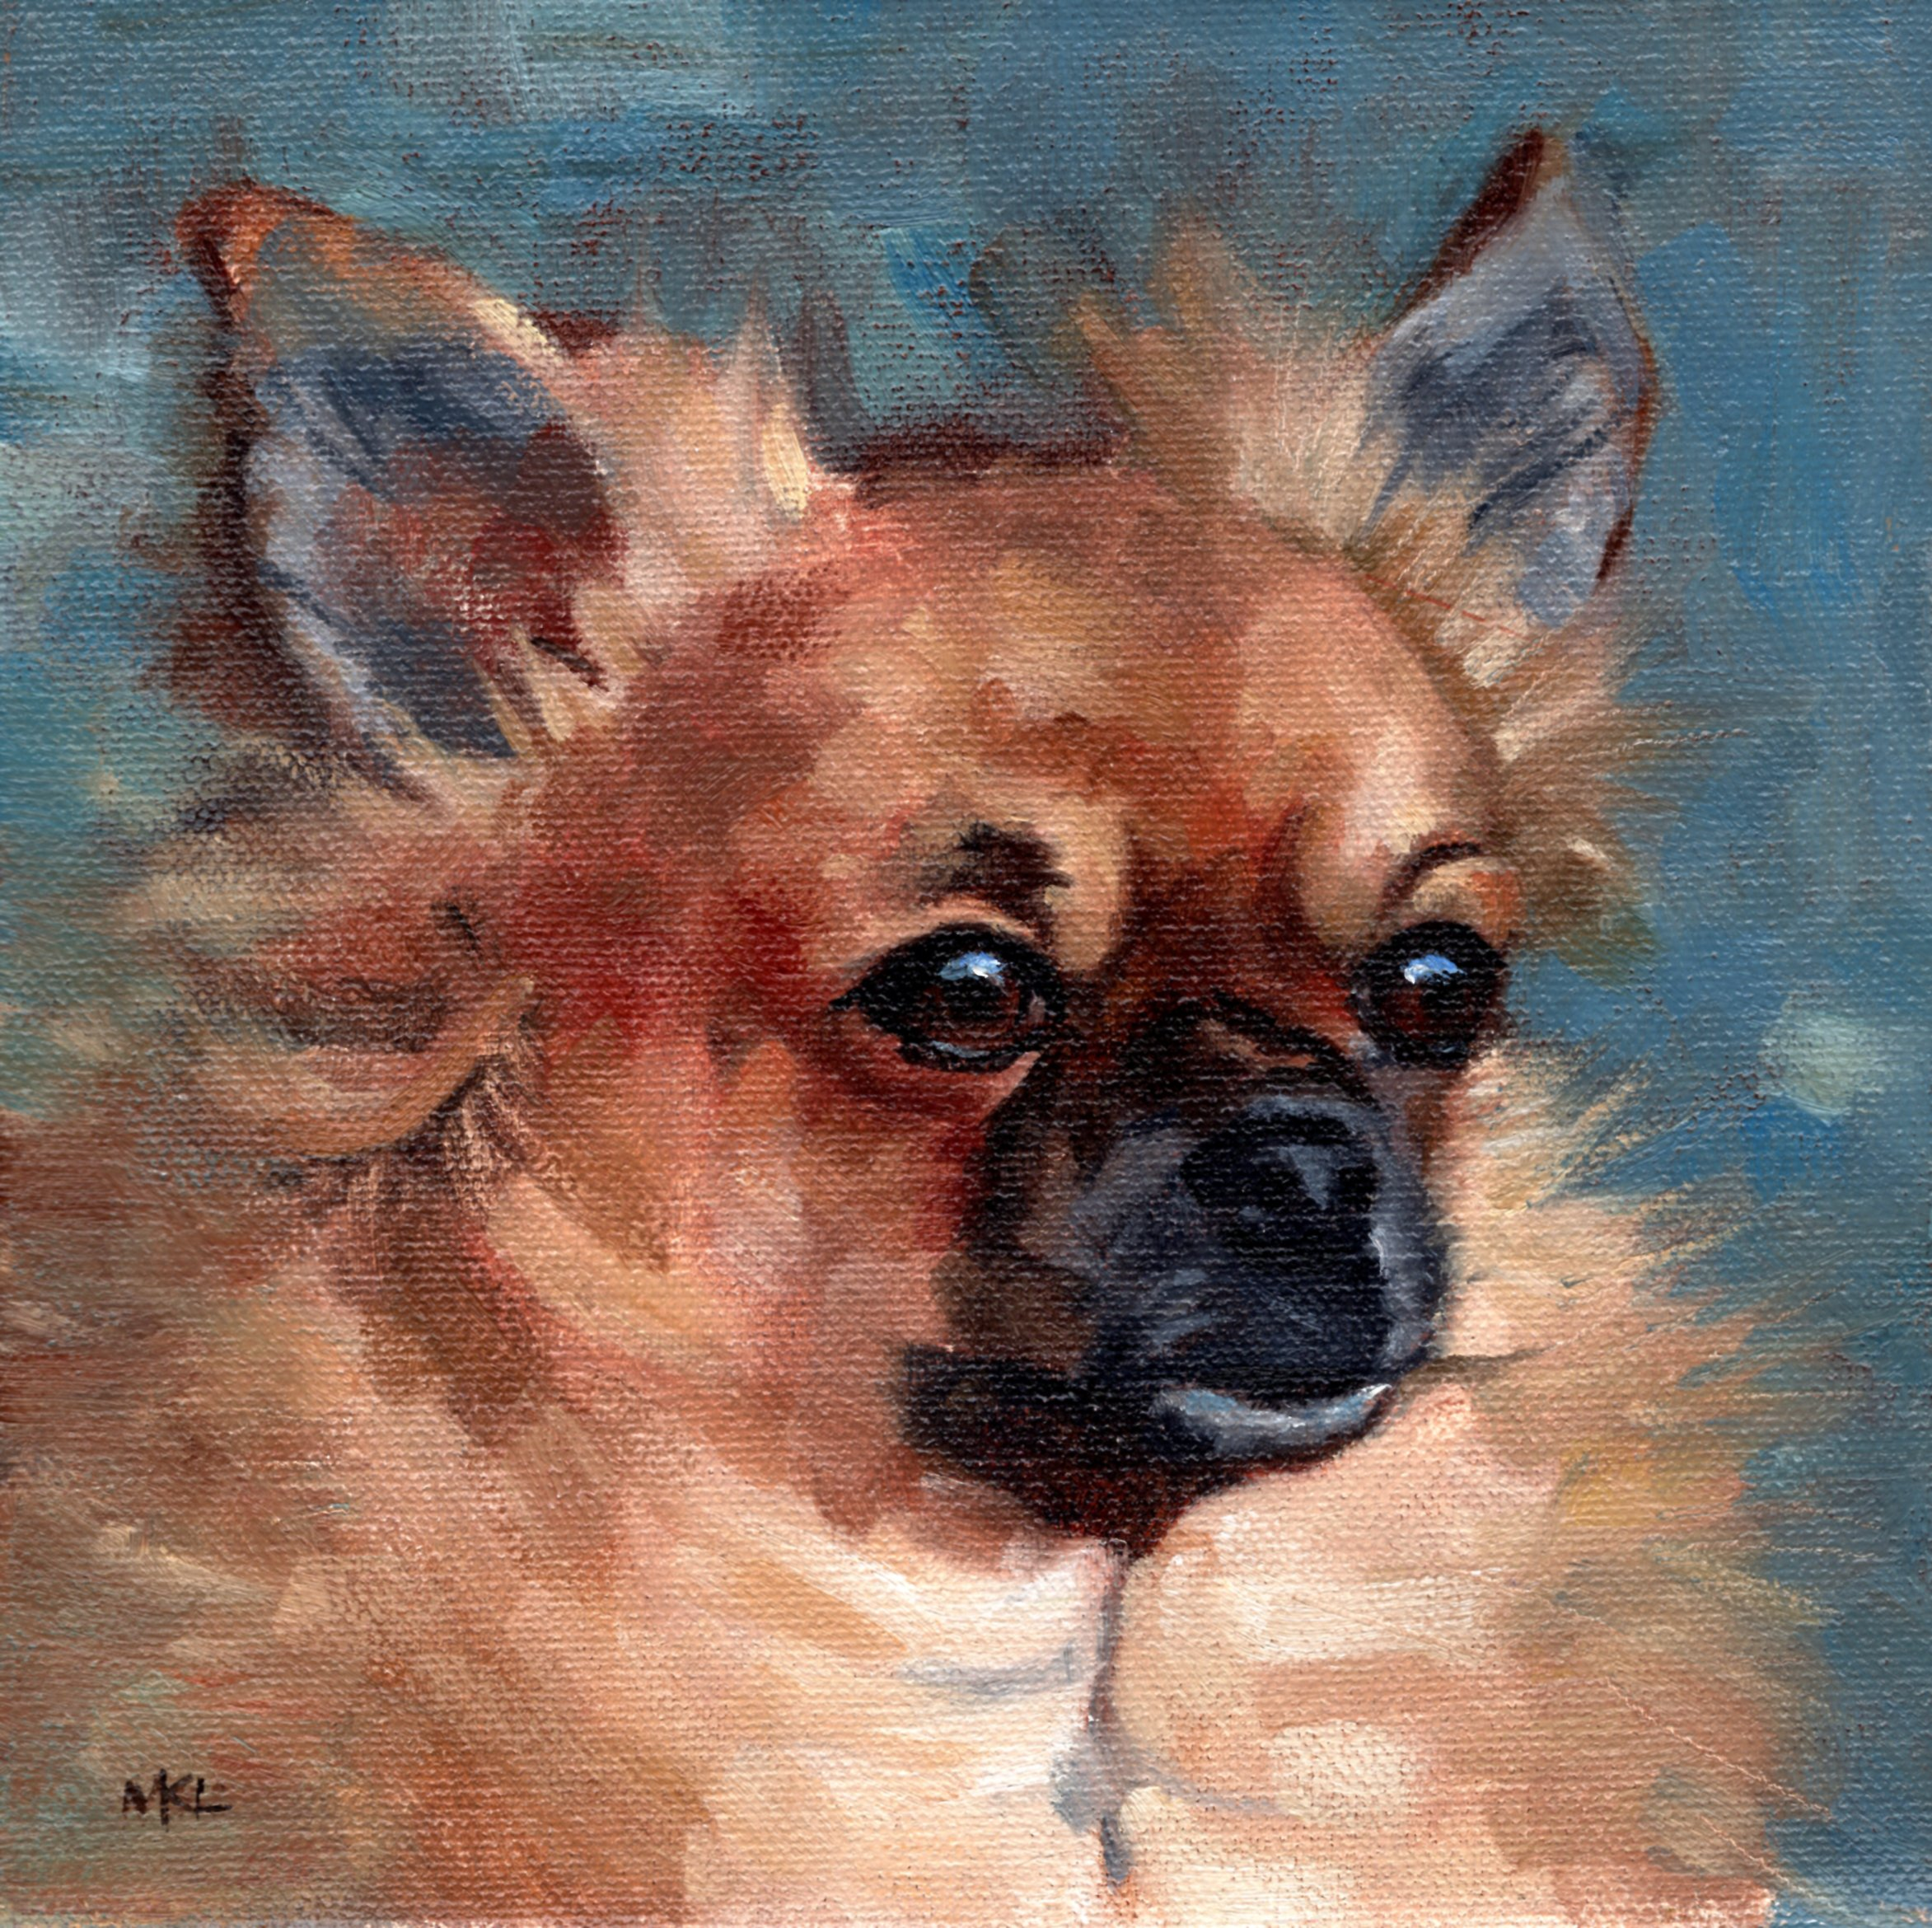 Long Haired Chihuahua_8x8sc_20200526